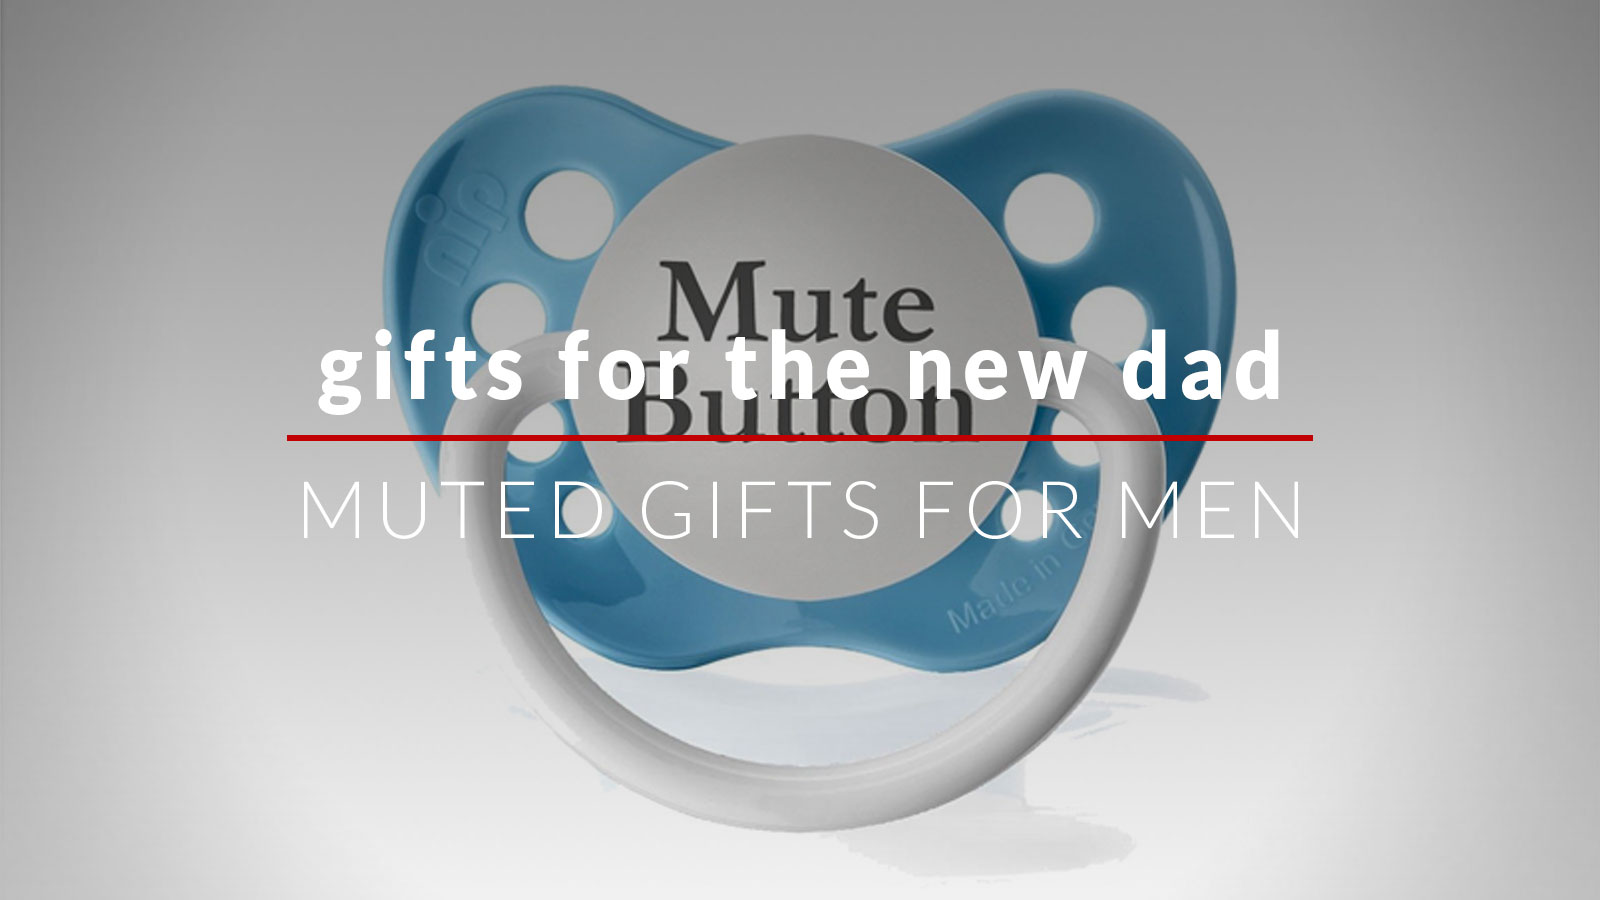 | gifts for men | gifts for the new dad